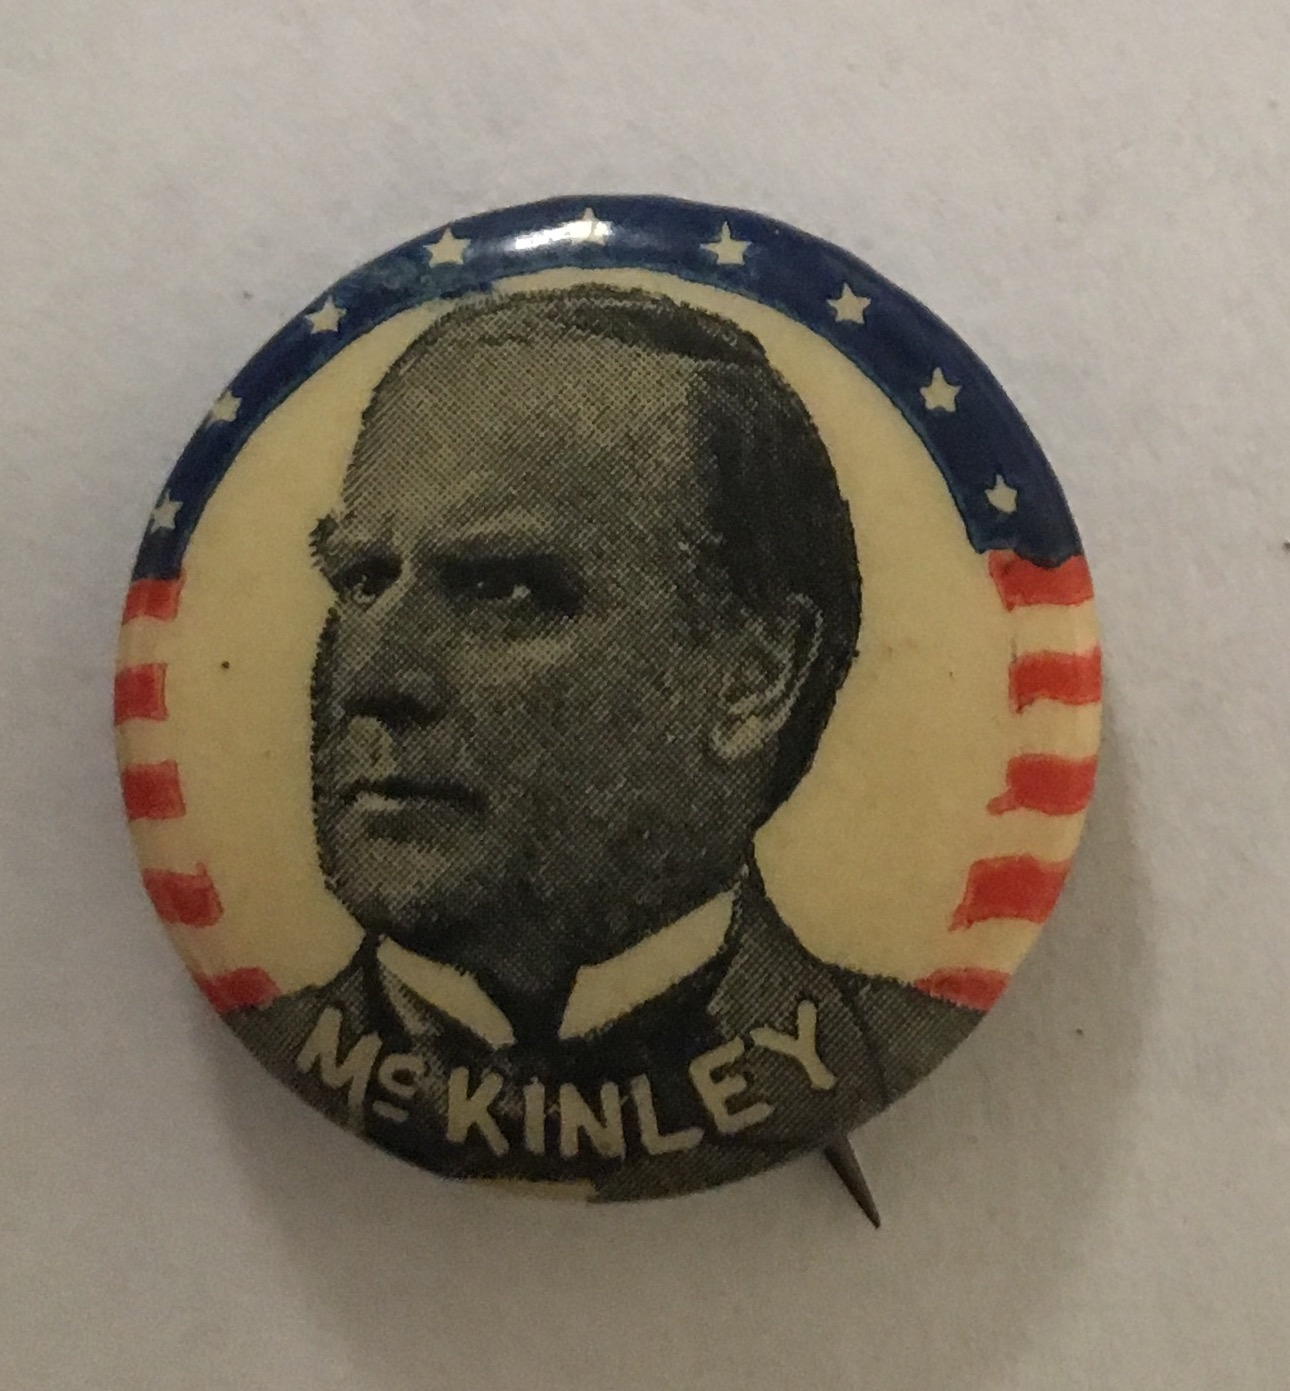 242fadce03b William McKinley Campaign Buttons